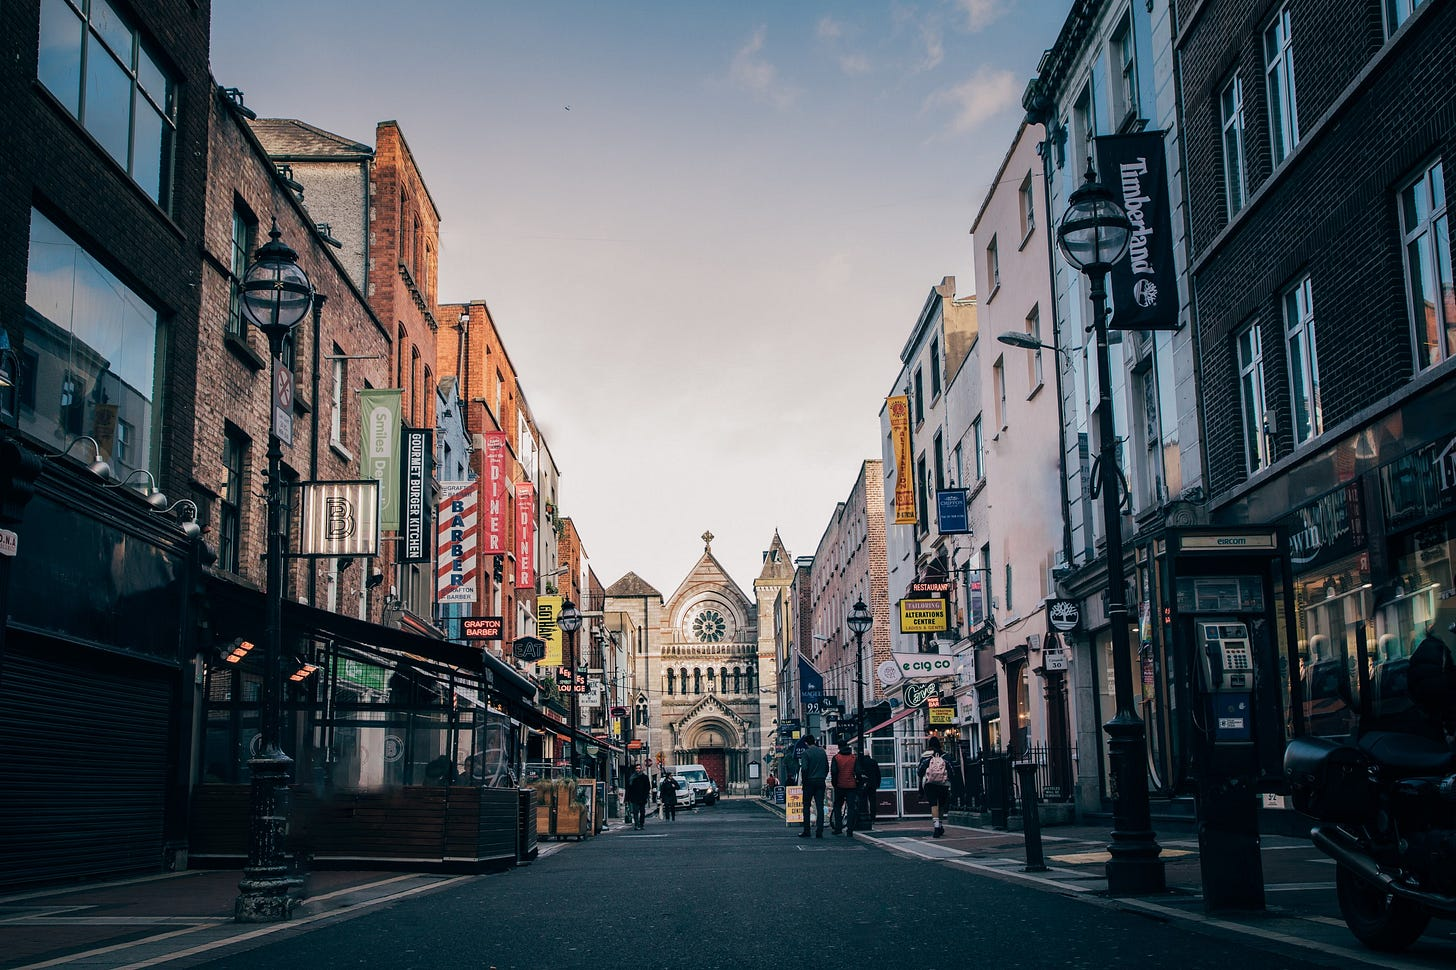 Photo of Parliament Street in Dublin for article by Larry G. Maguire